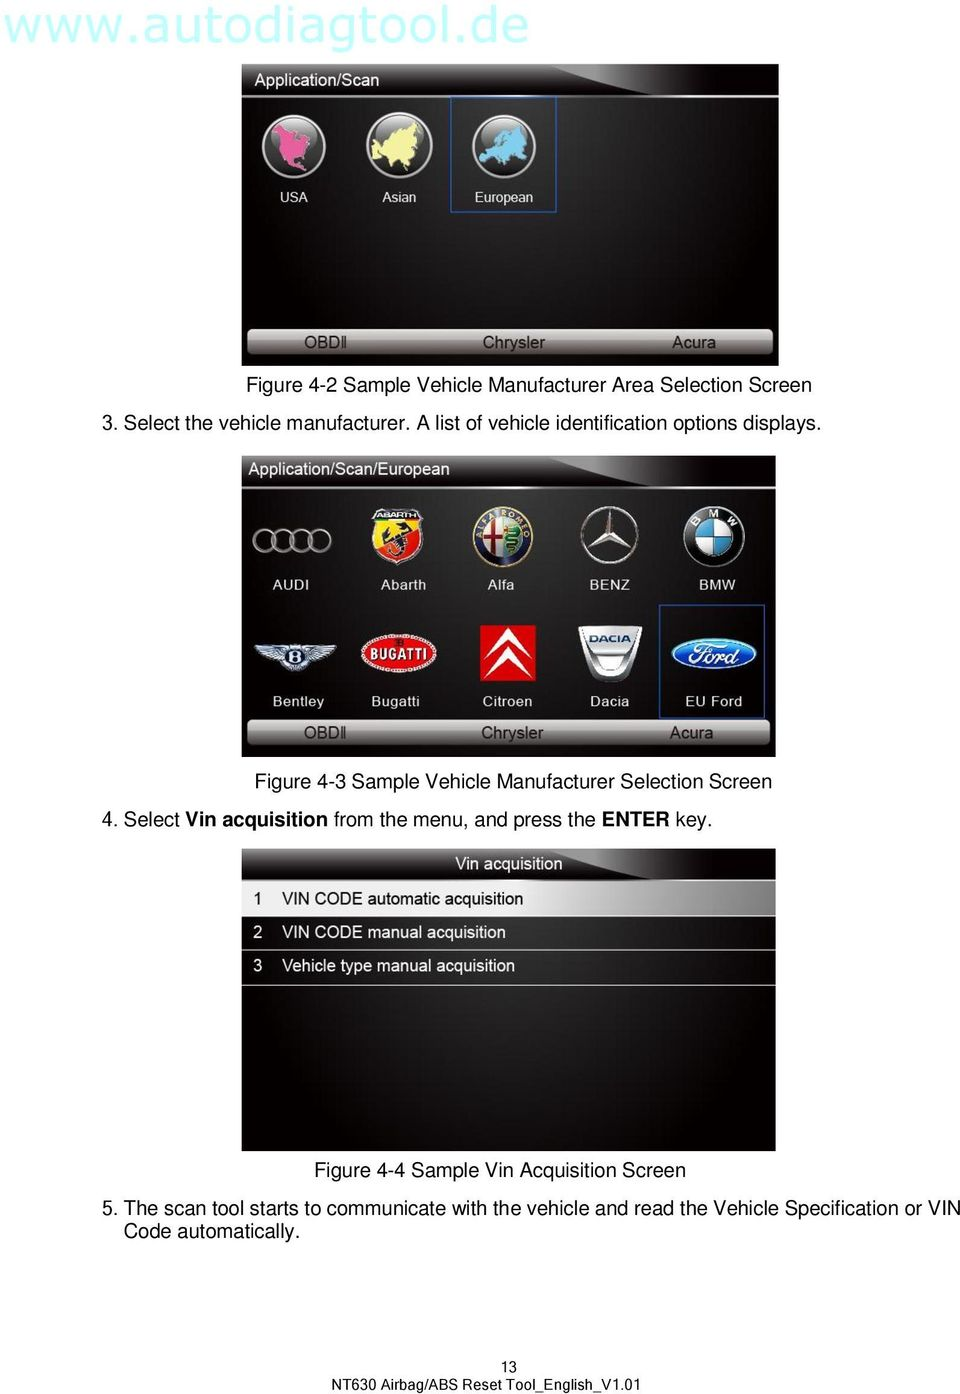 Figure 4-3 Sample Vehicle Manufacturer Selection Screen 4.